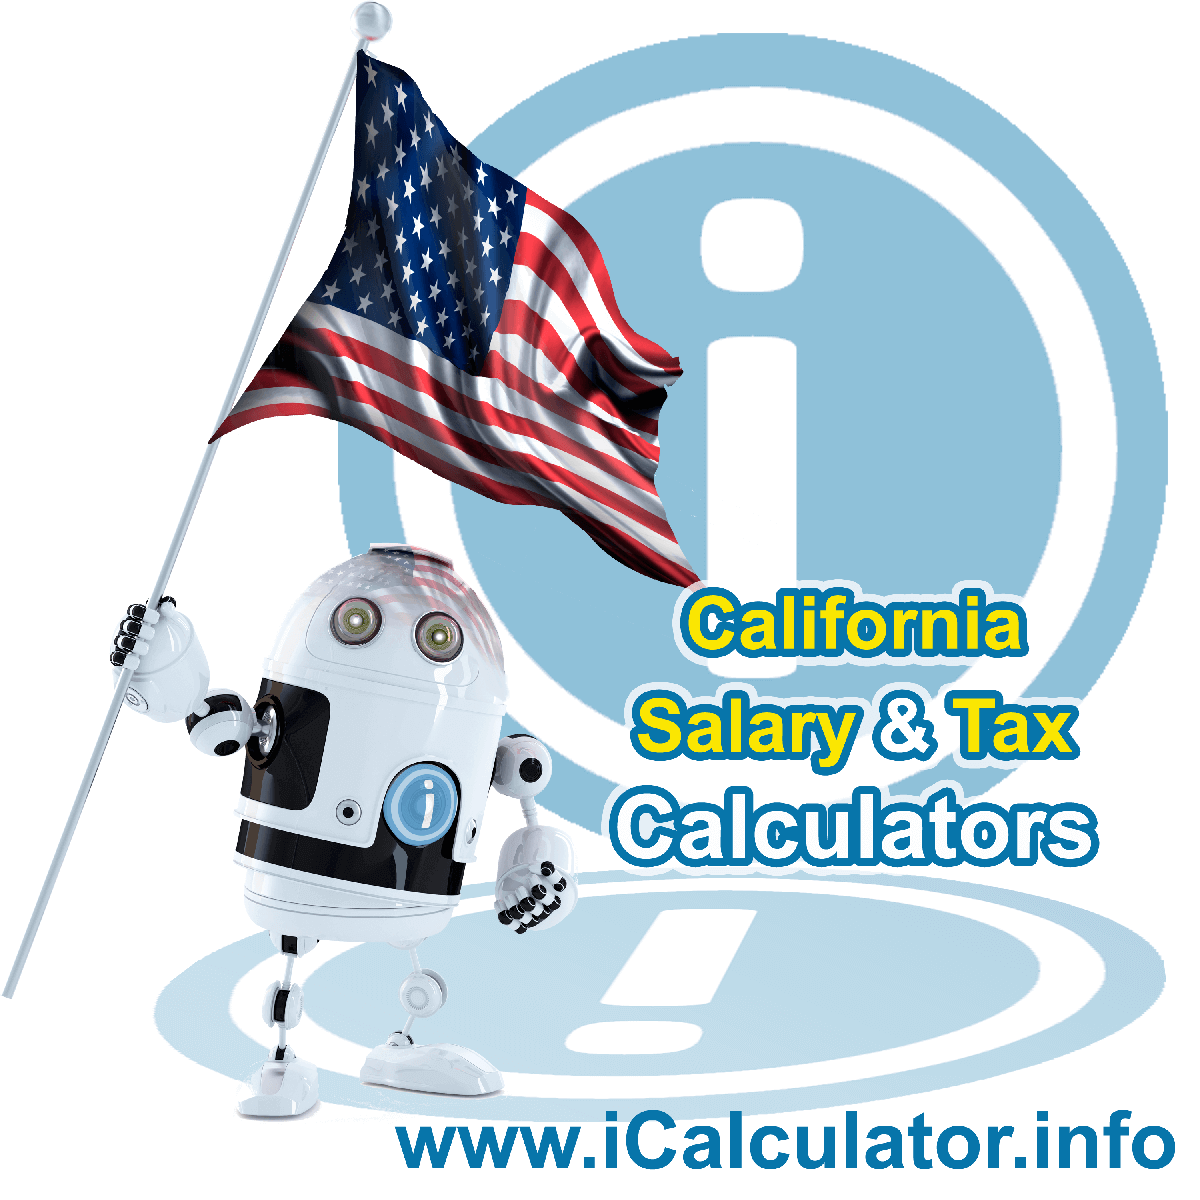 California Salary Calculator 2020 | iCalculator | The California Salary Calculator allows you to quickly calculate your salary after tax including California State Tax, Federal State Tax, Medicare Deductions, Social Security, Capital Gains and other income tax and salary deductions complete with supporting California state tax tables